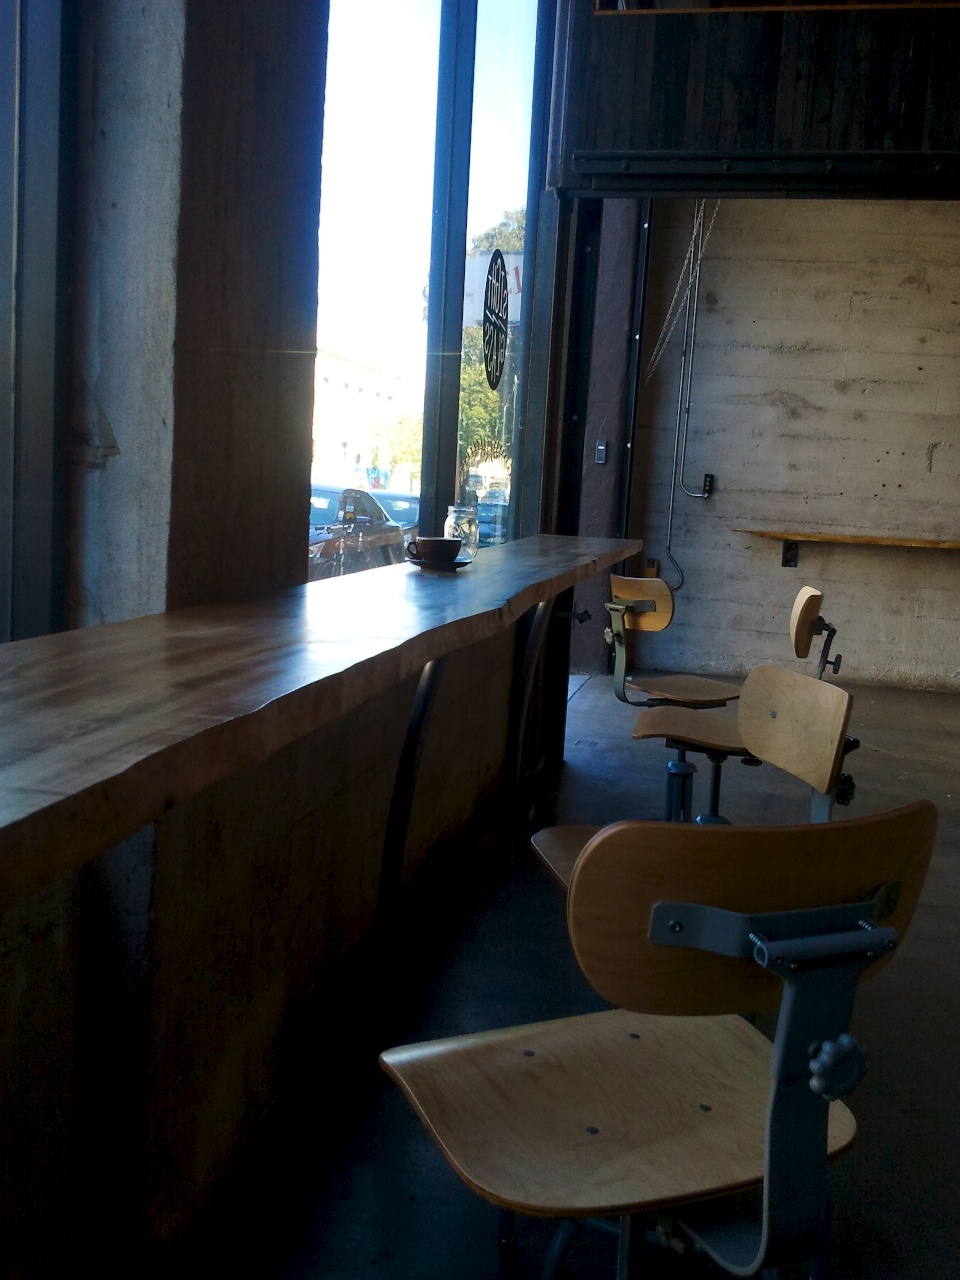 SF_sightglass_chairs.jpg